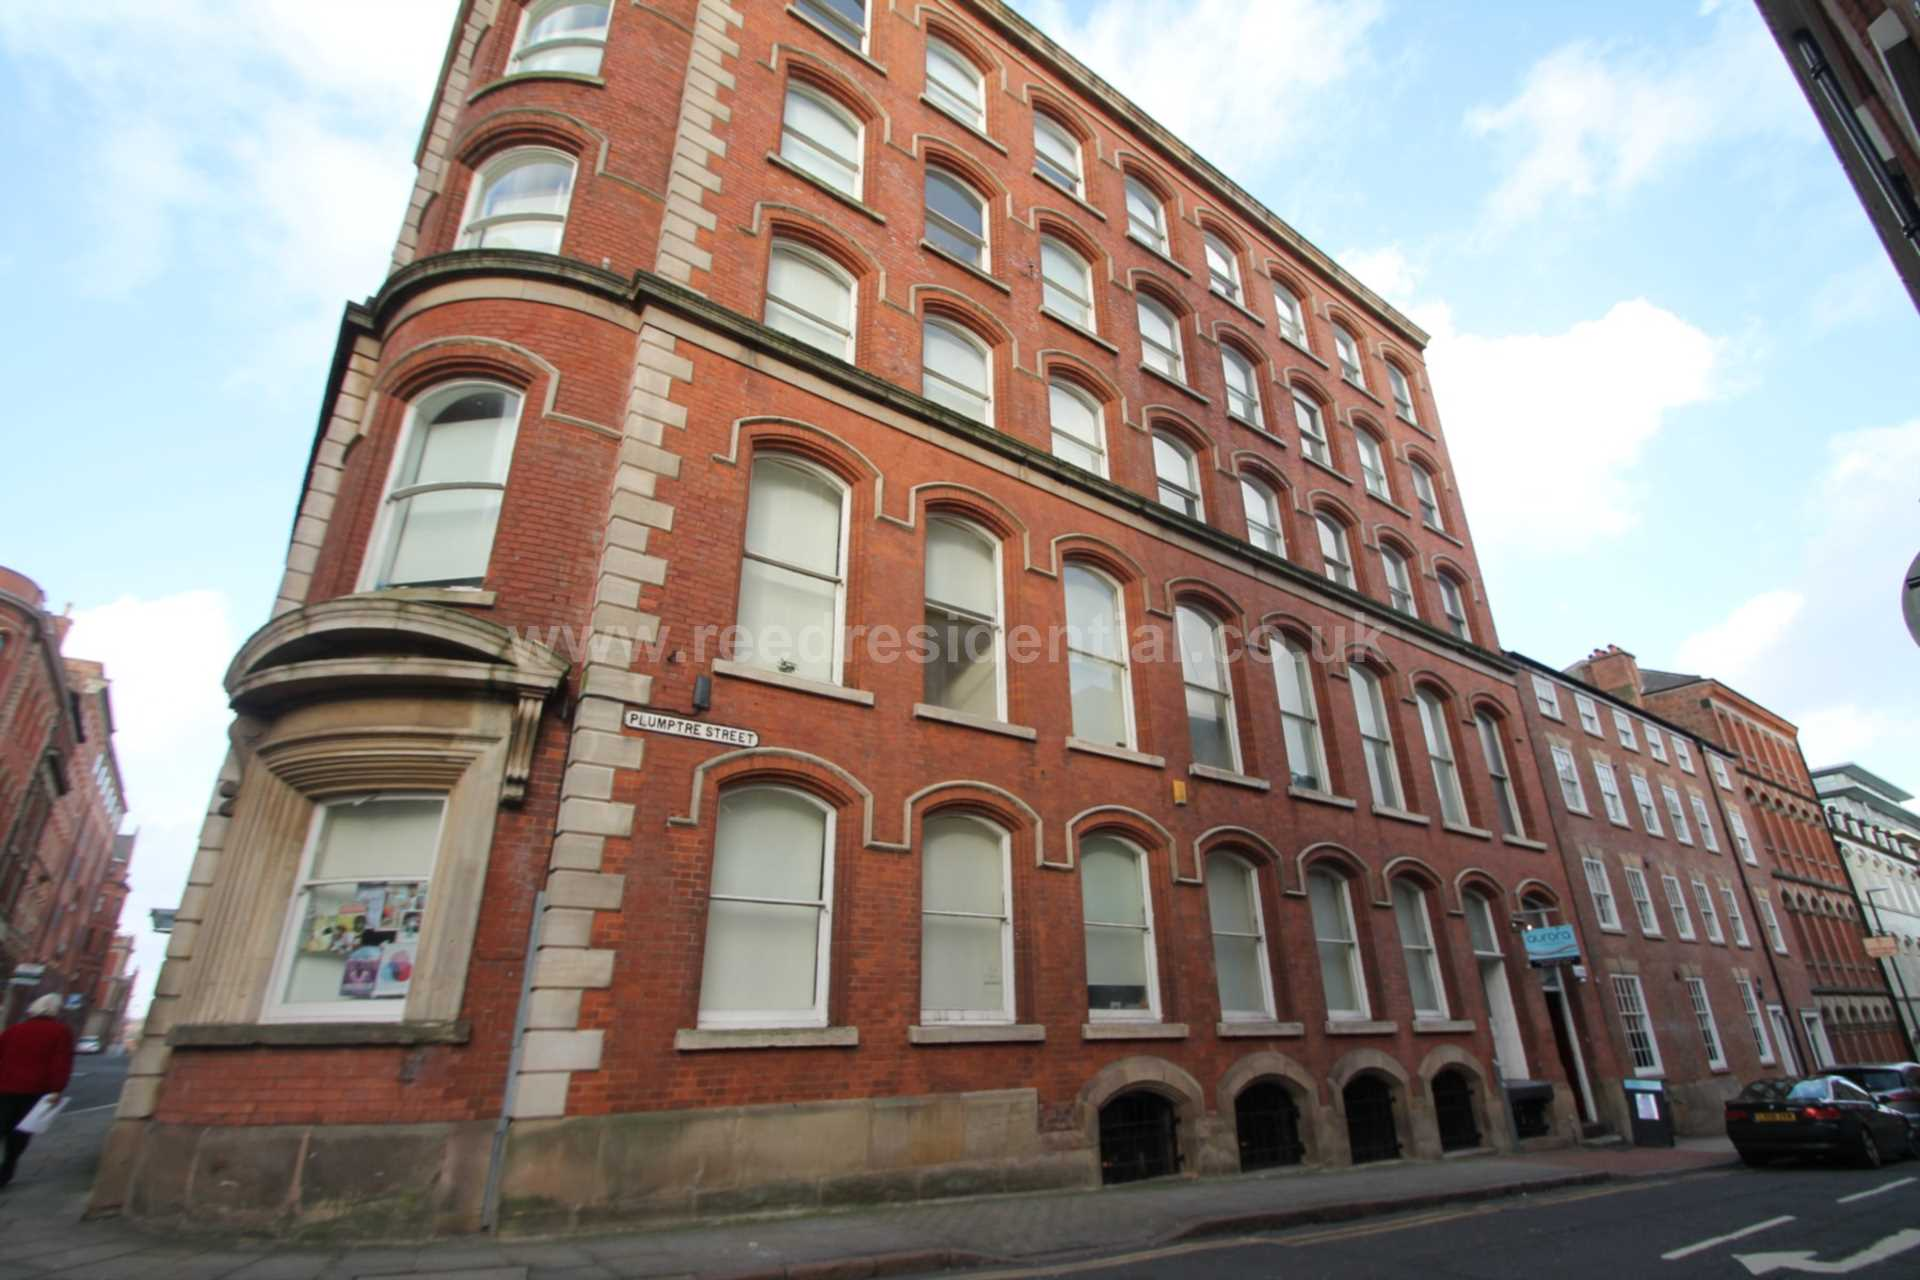 Reed Residential - 8 Bedroom Apartment, Stoney Street, Nottingham